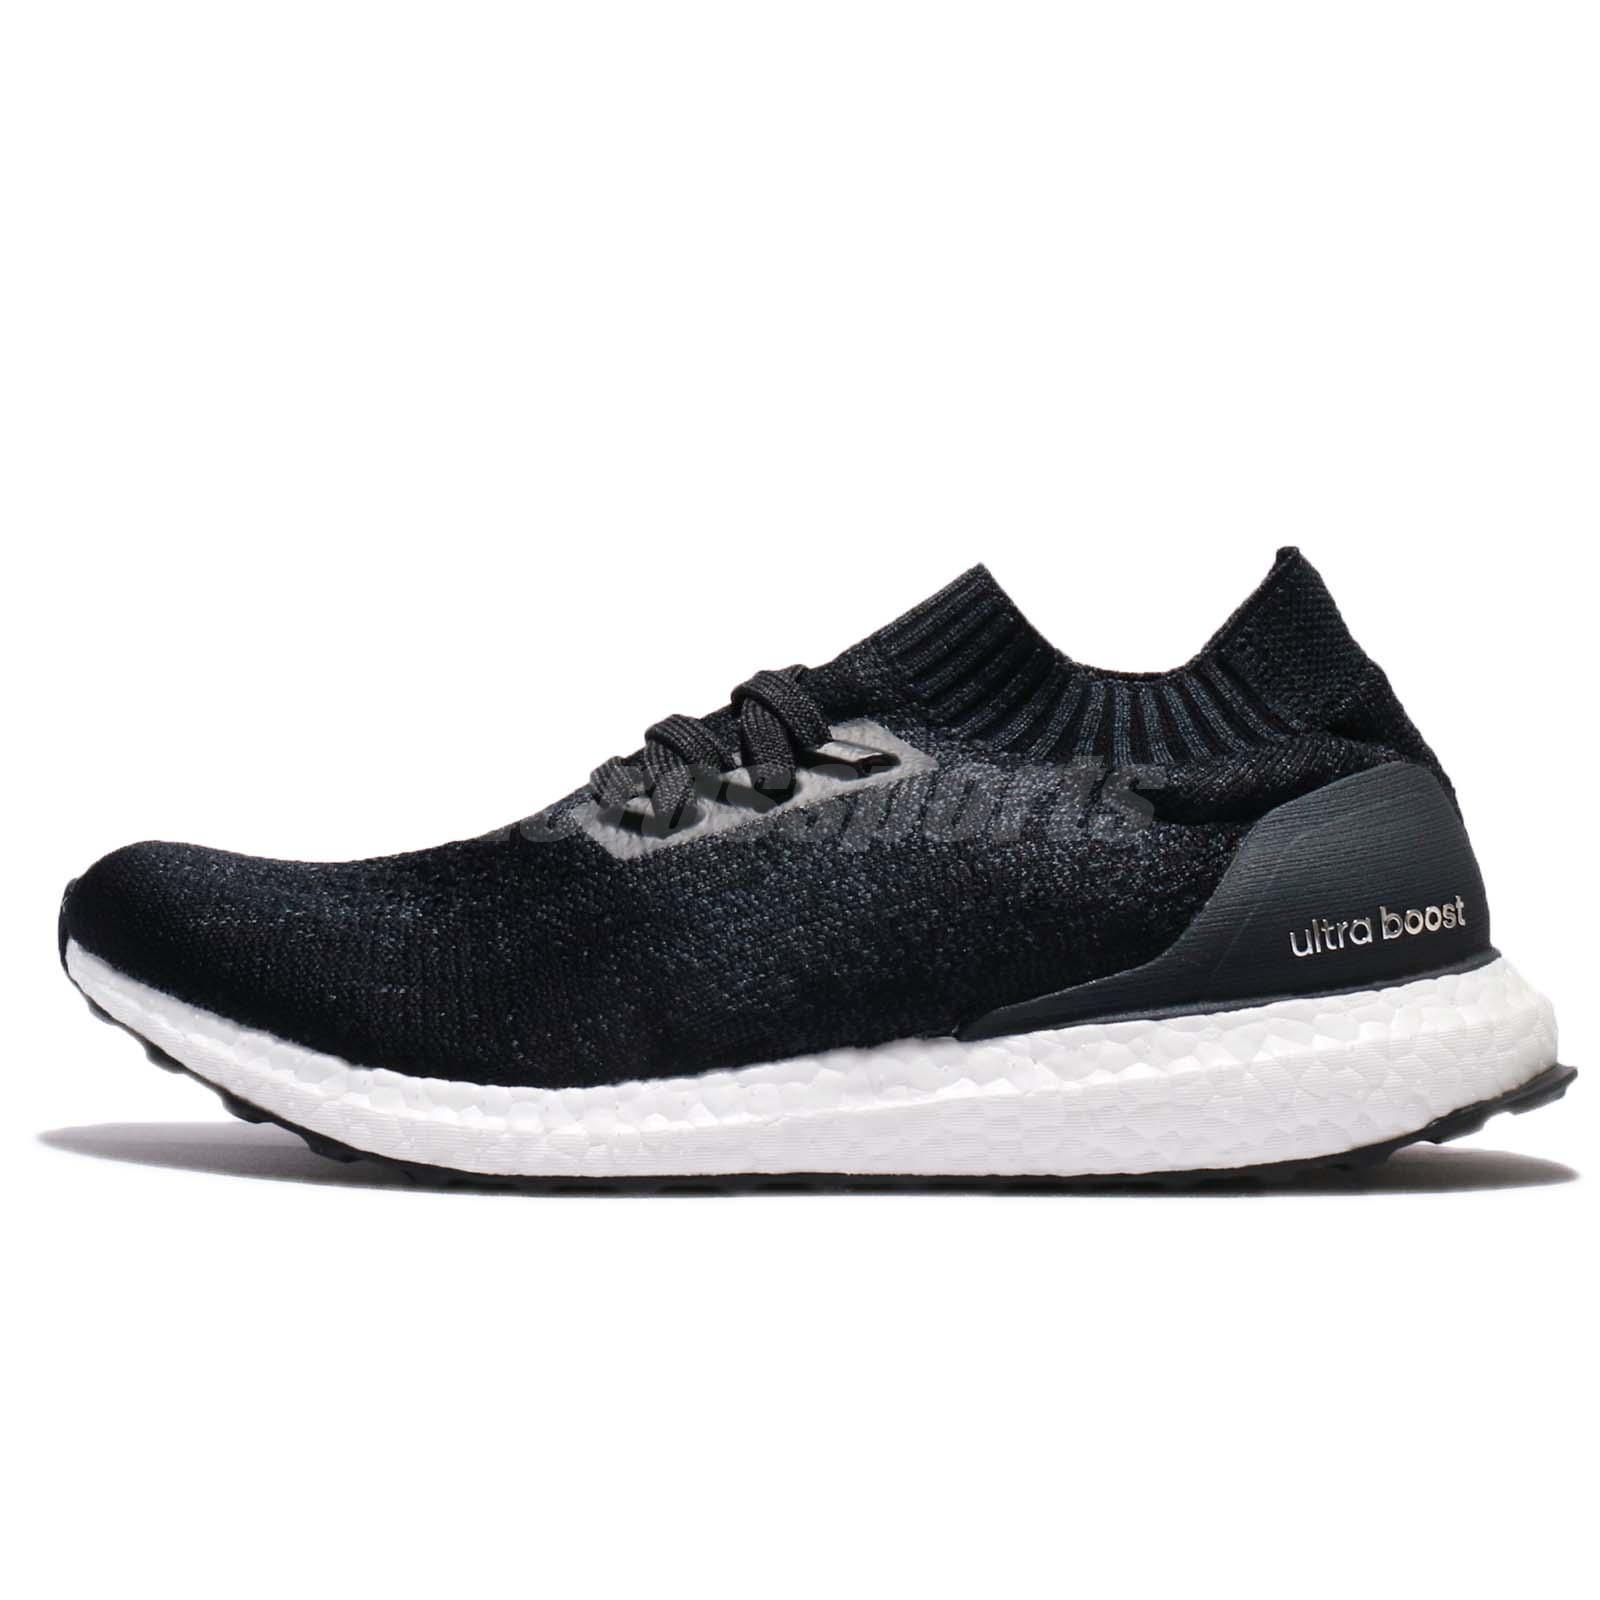 05a5c944f134 adidas UltraBOOST Uncaged Black White Men Running Shoes Sneakers Trainers  DA9164